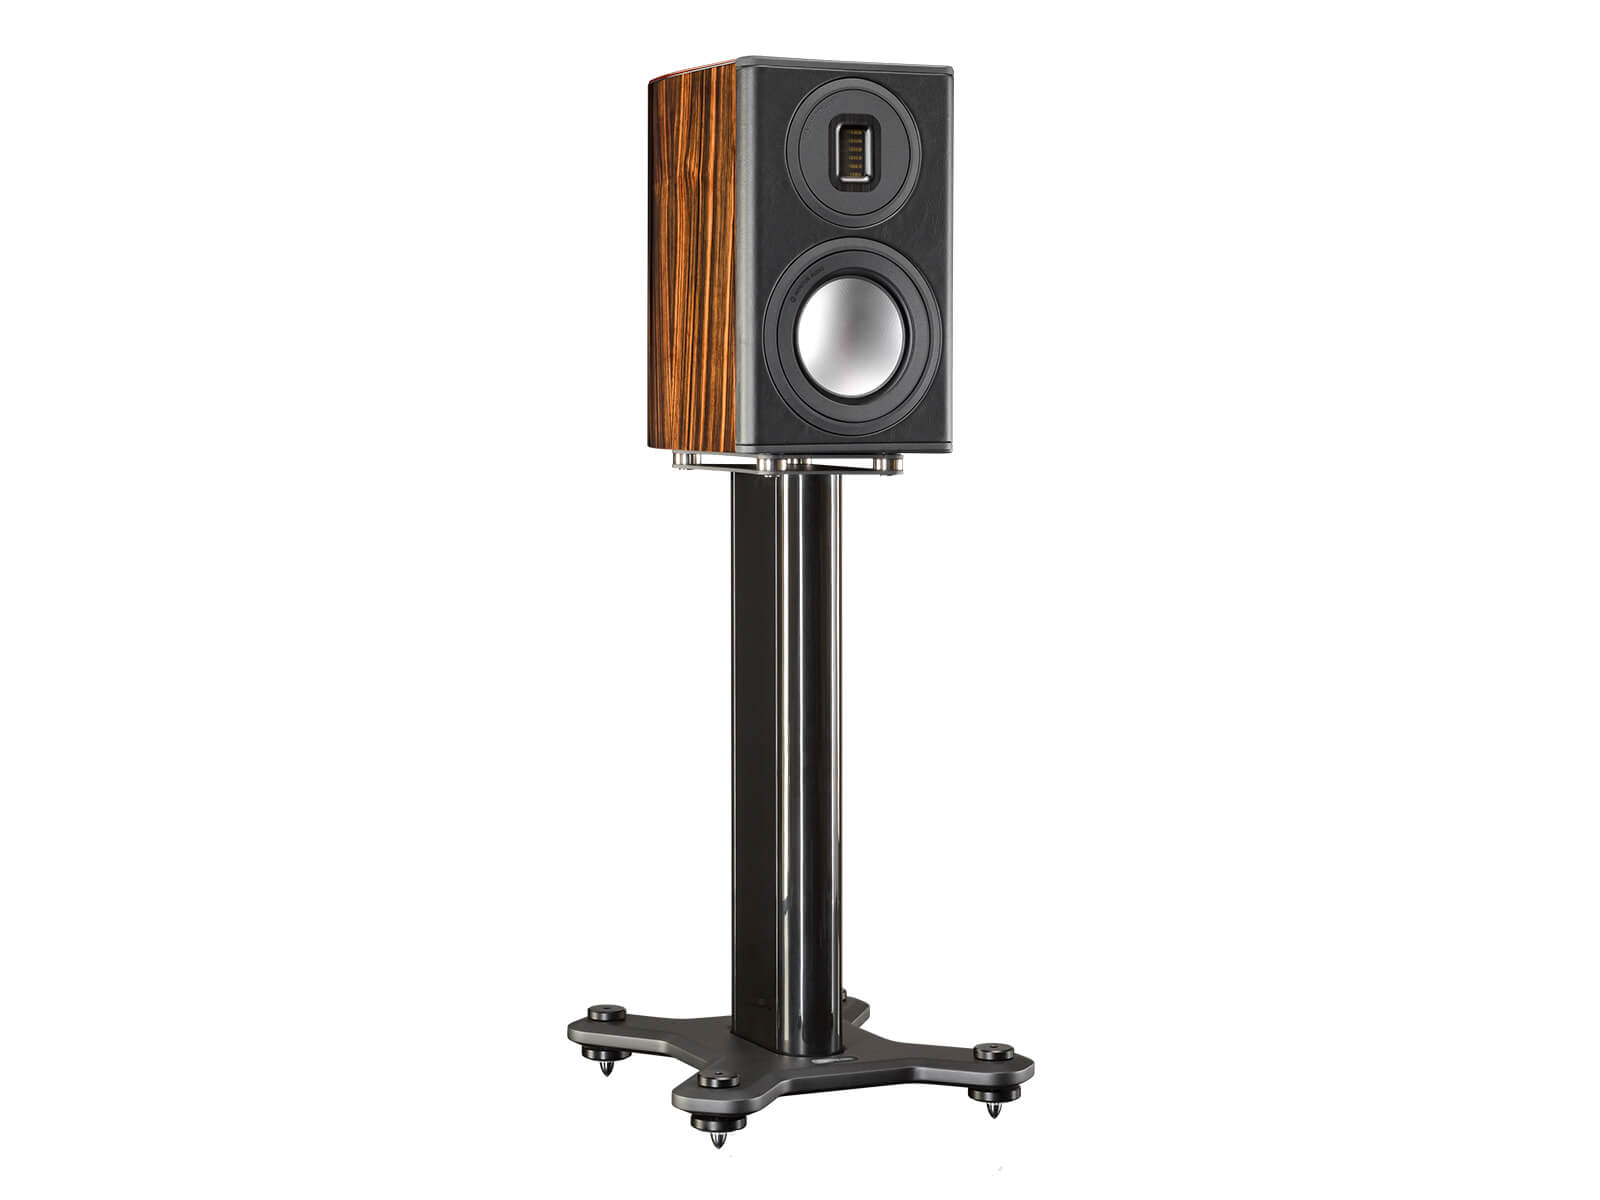 Platinum PL100 II, bookshelf speakers, featuring a grille and a piano black lacquer finish.